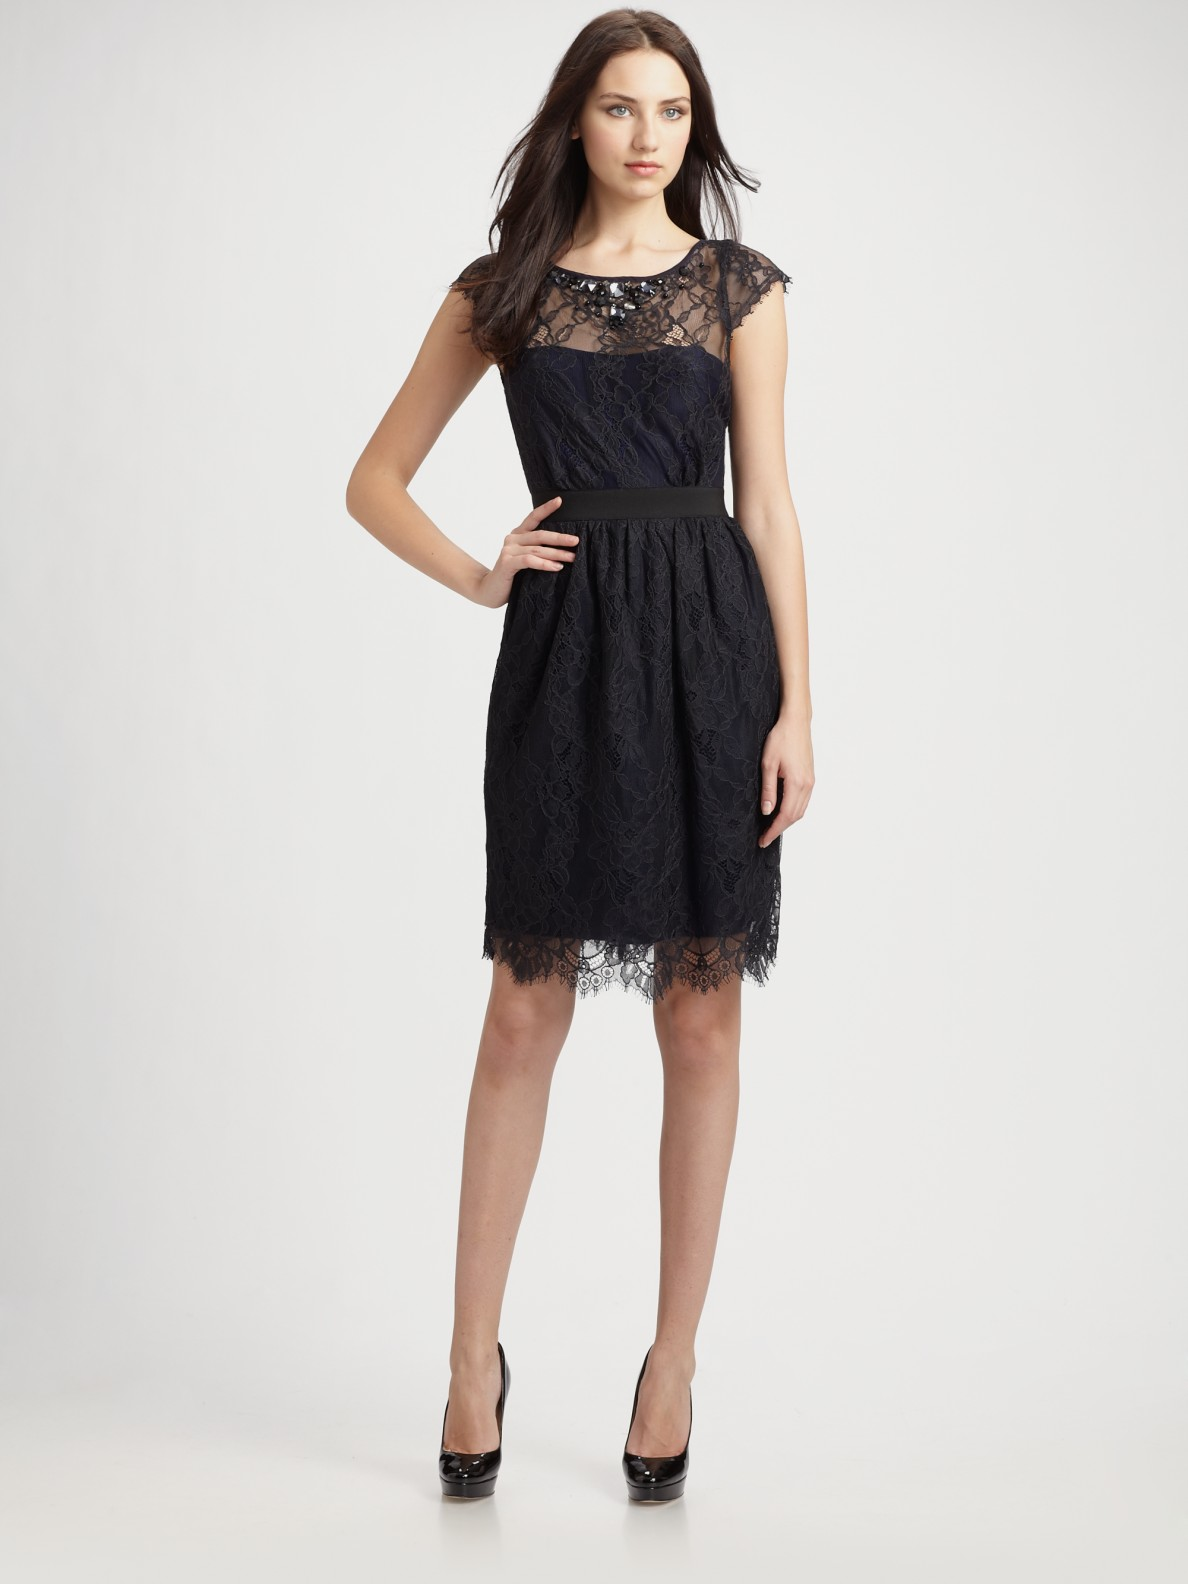 Ml Monique Lhuillier Midnight Lace Cocktail Dress In Black